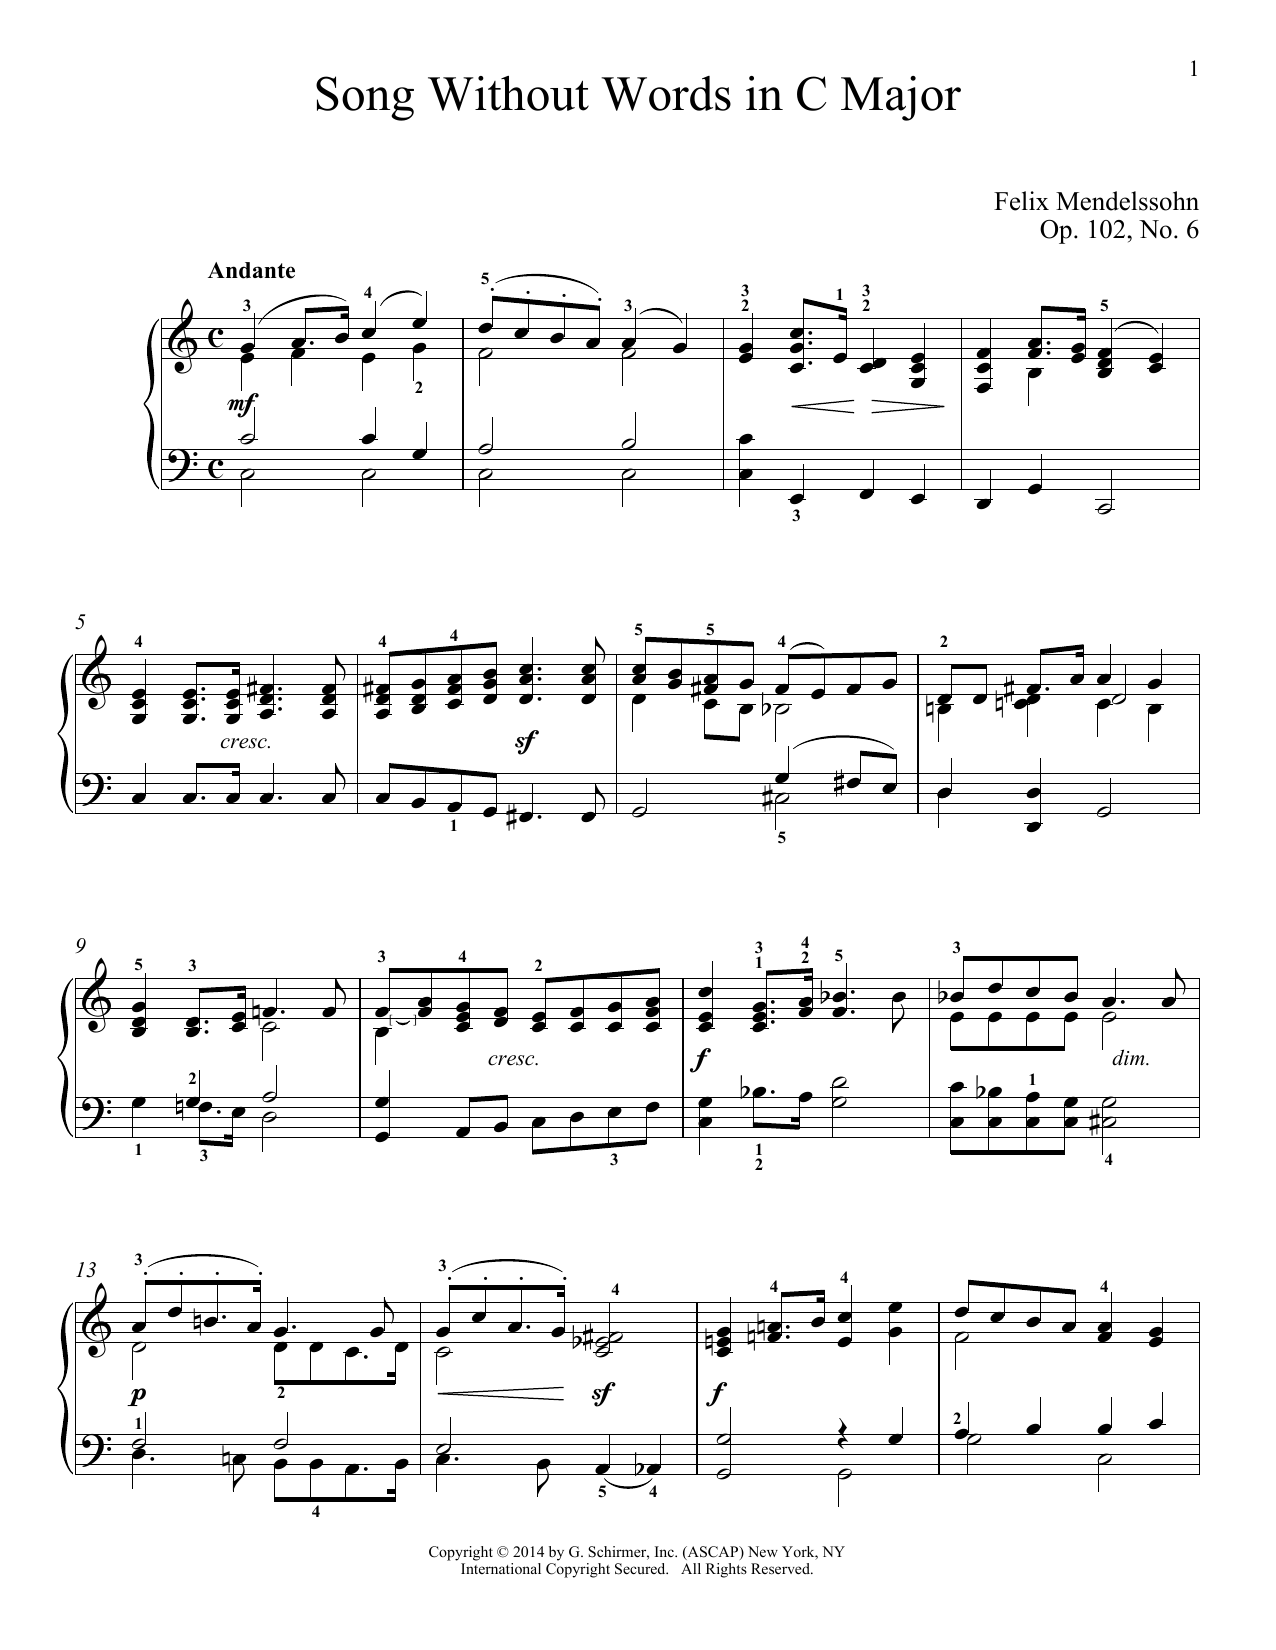 Download Felix Mendelssohn 'Song Without Words In C Major, Op. 102, No. 6' Digital Sheet Music Notes & Chords and start playing in minutes